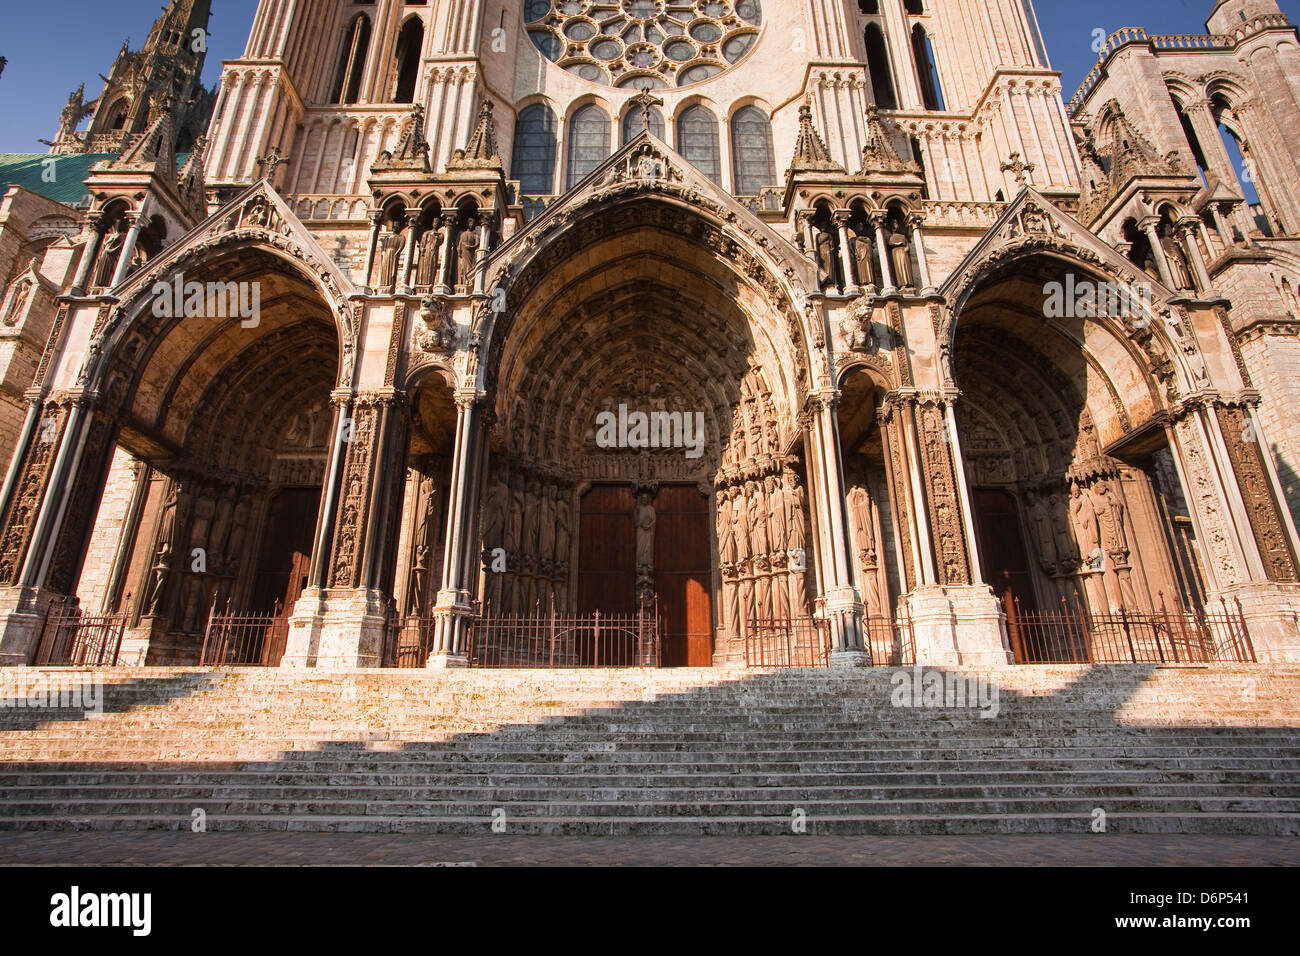 The southern portal of Chartres Cathedral, UNESCO World Heritage Site, Chartres, Eure-et-Loir, Centre, France, Europe - Stock Image